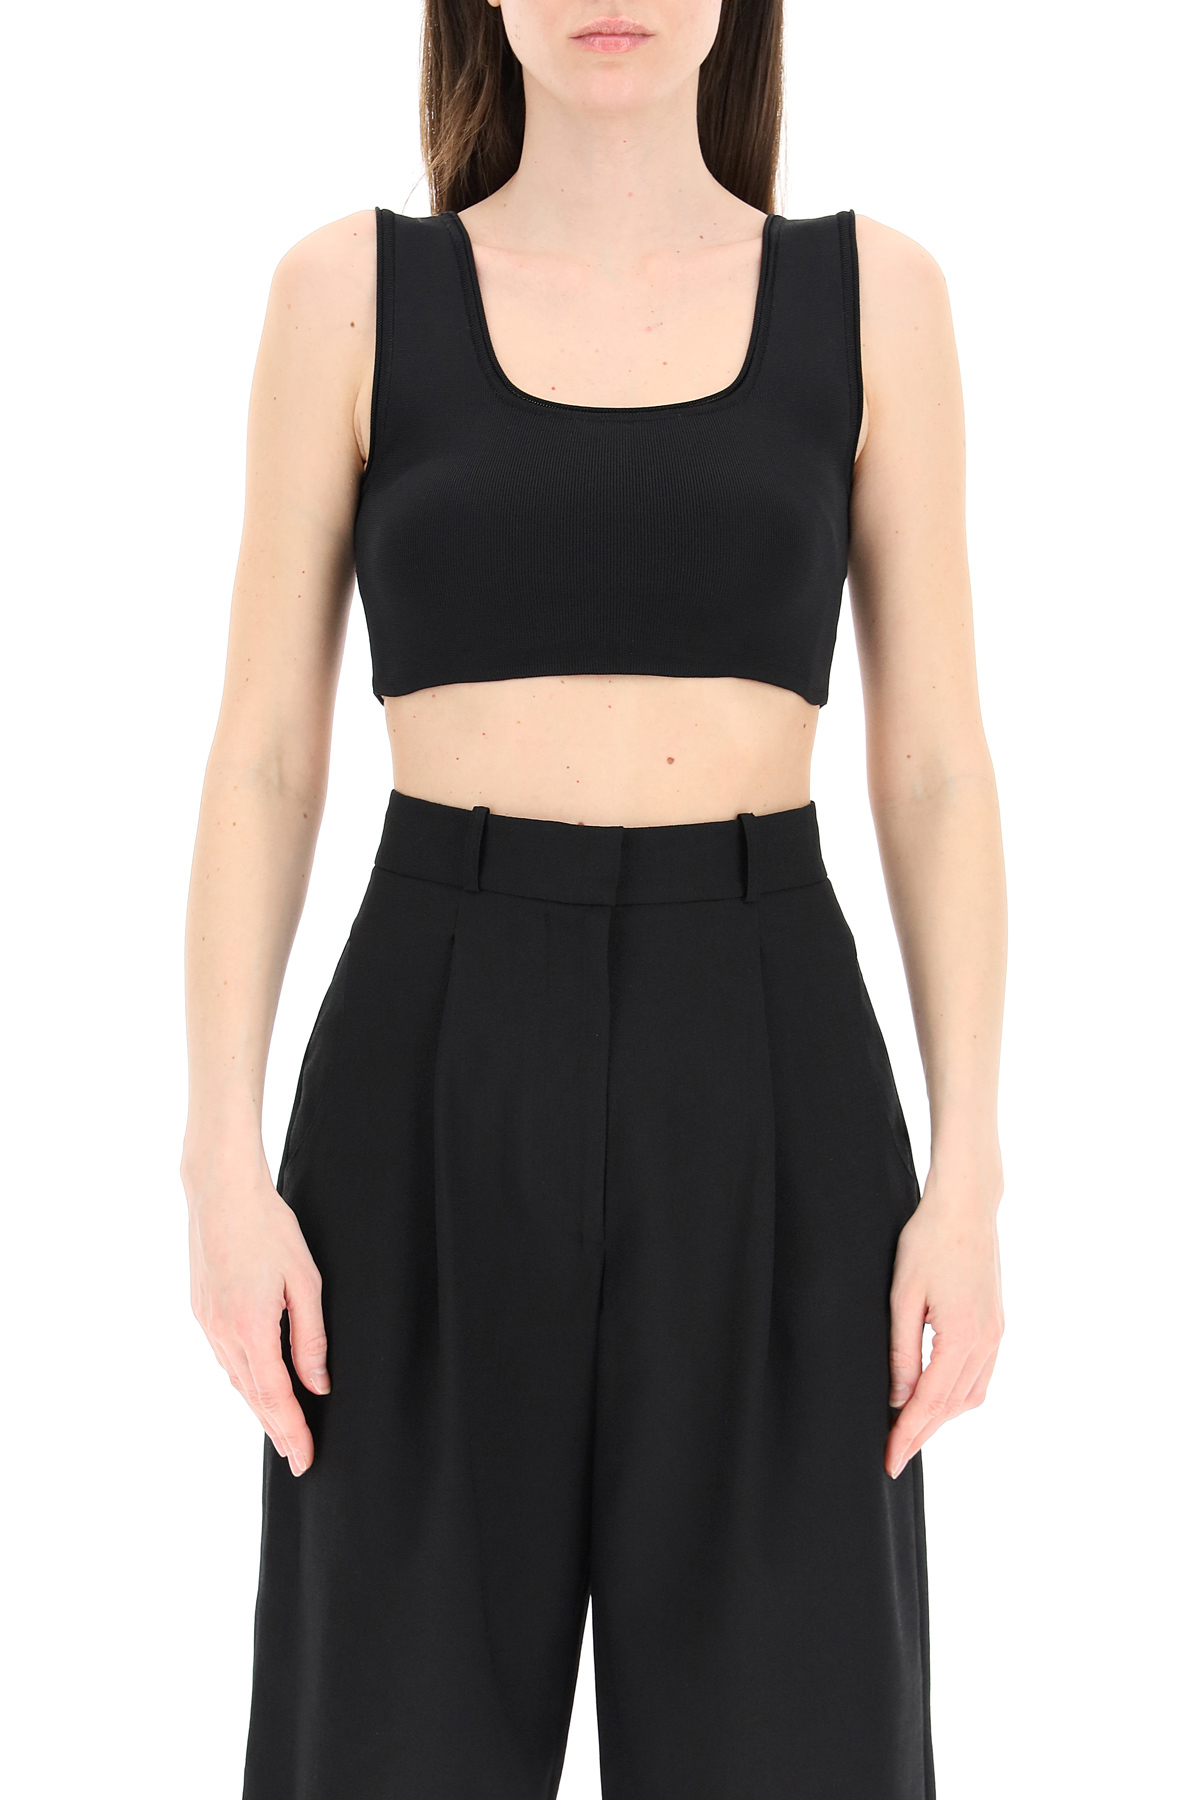 Low classic top cropped